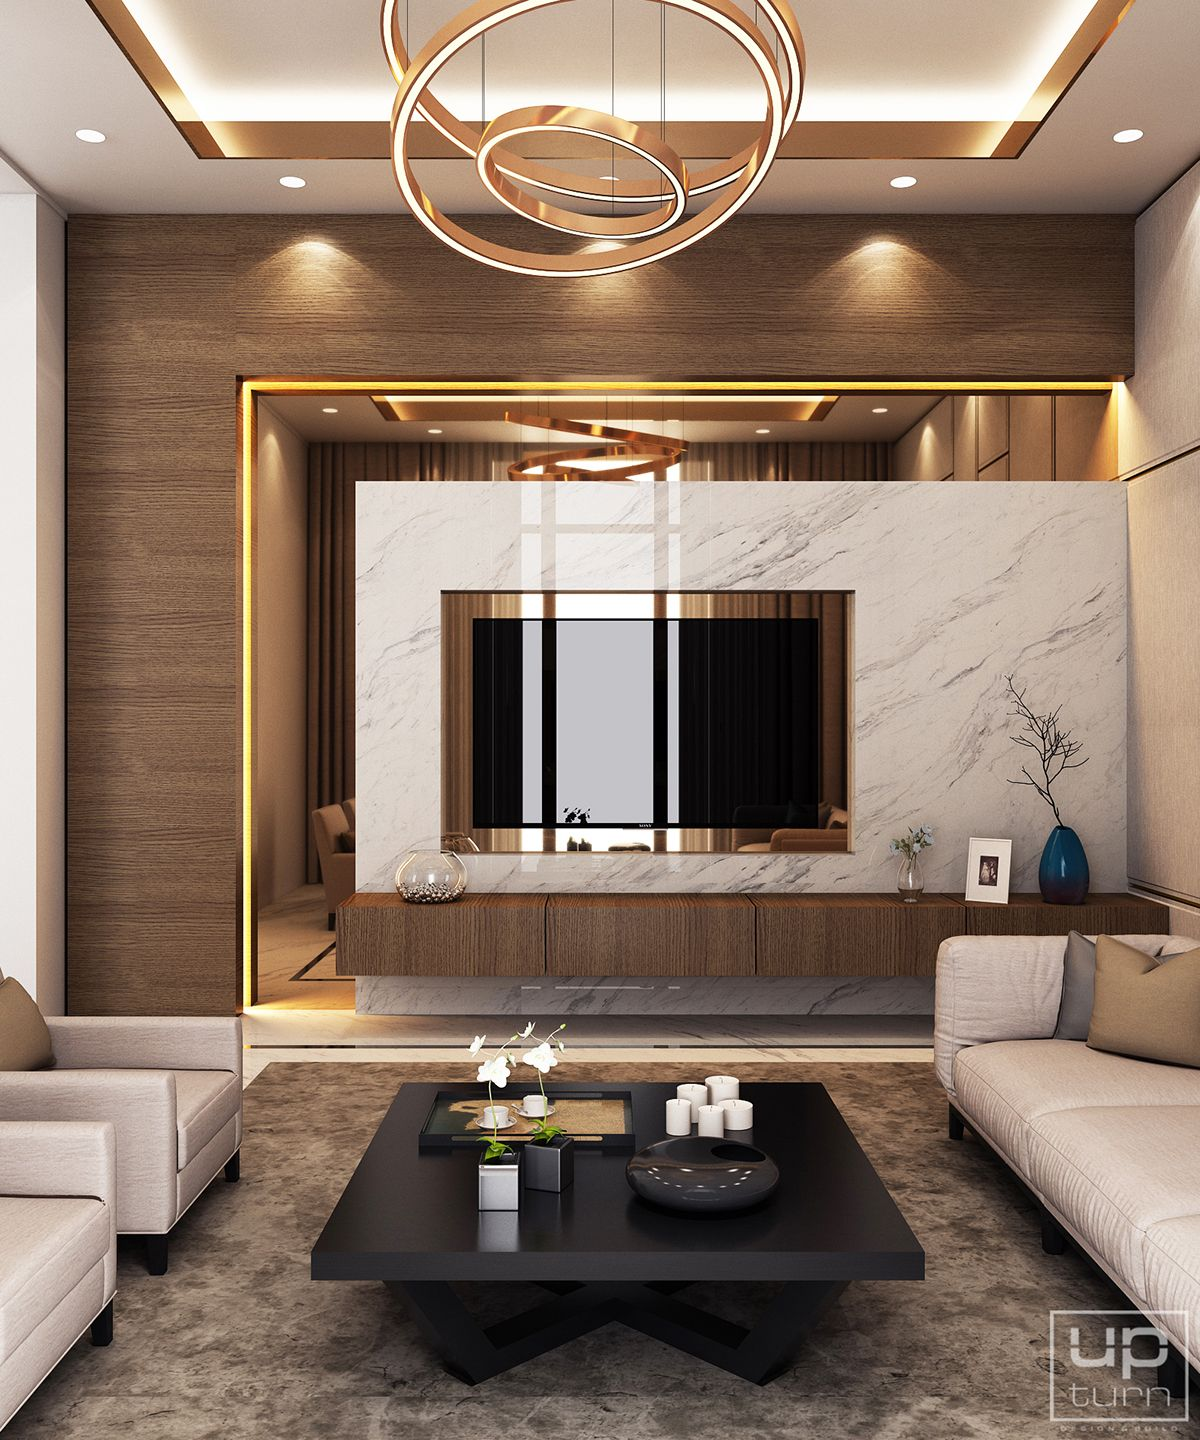 24 Luxury And Modern Home Office Designs: Luxury Modern Villa - Qatar On Behance